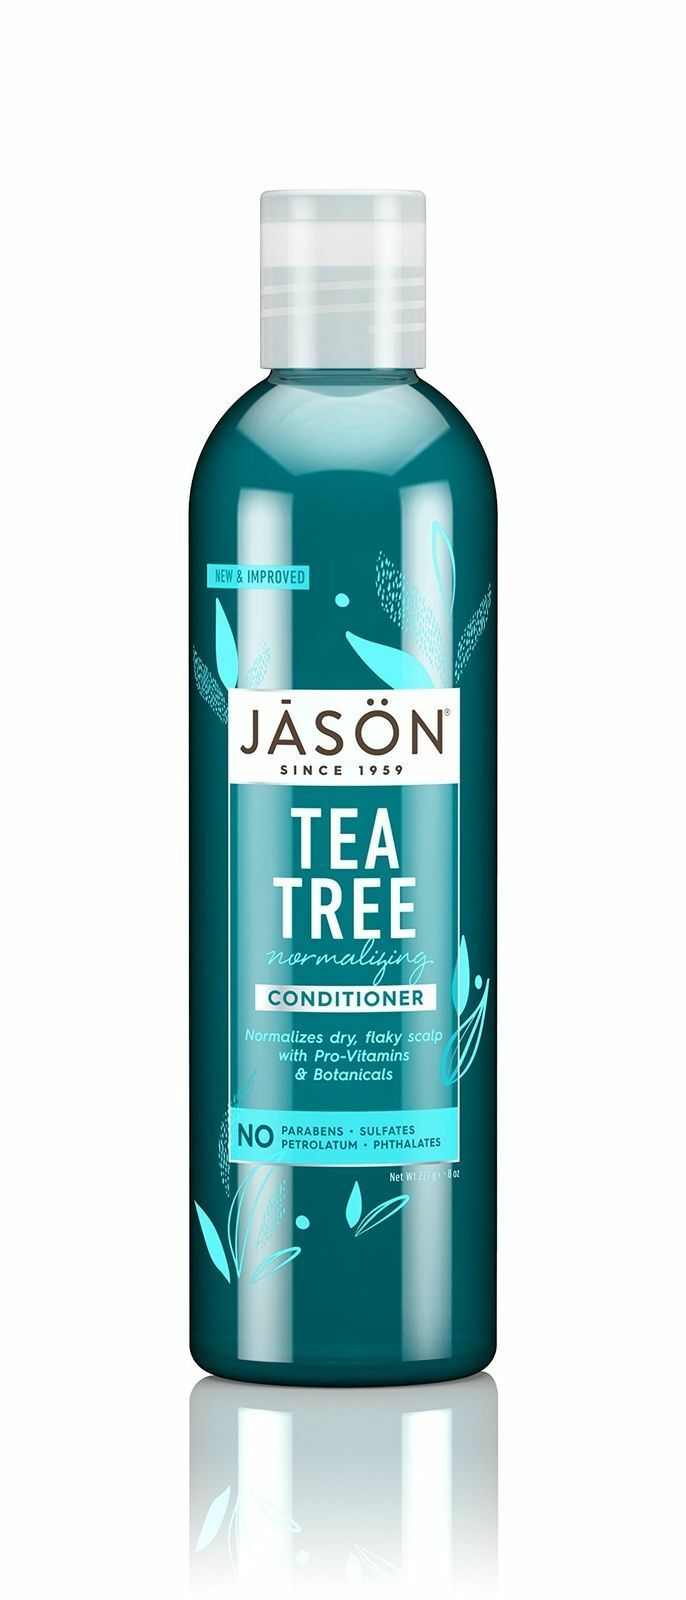 Jason Tea Tree Normalising Treatment Conditioner Dry, Itchy Scalp.